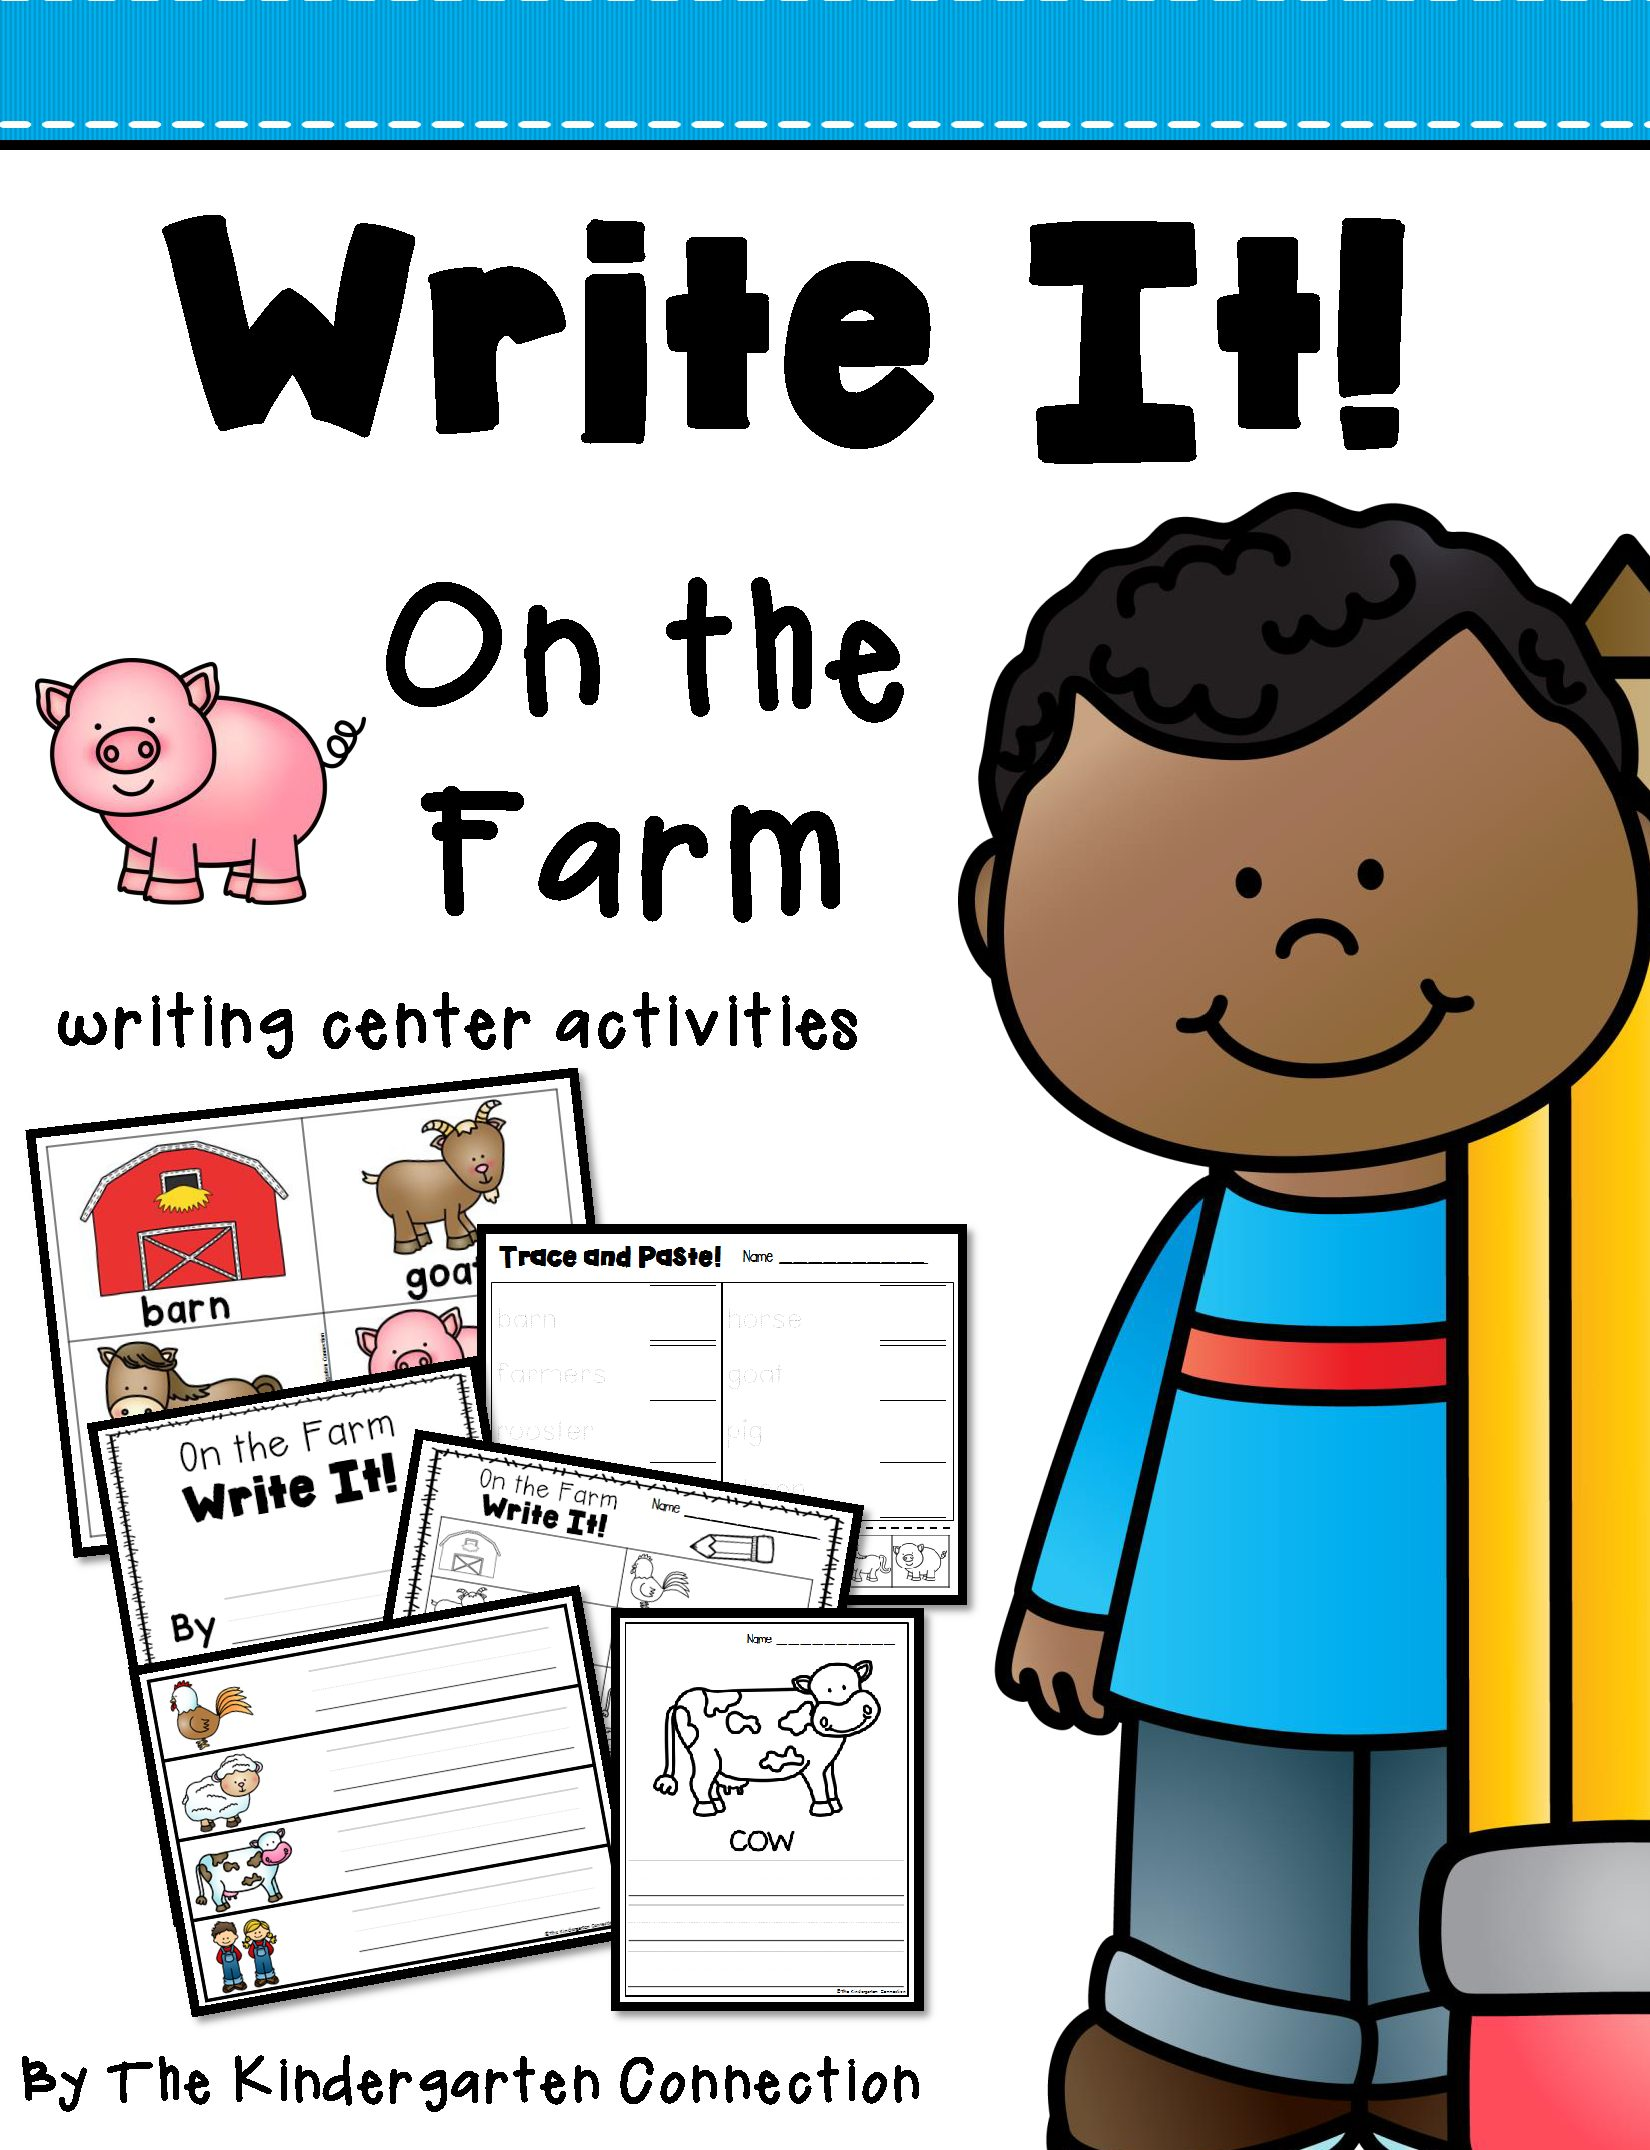 Write It! On the Farm Writing Center Activities.